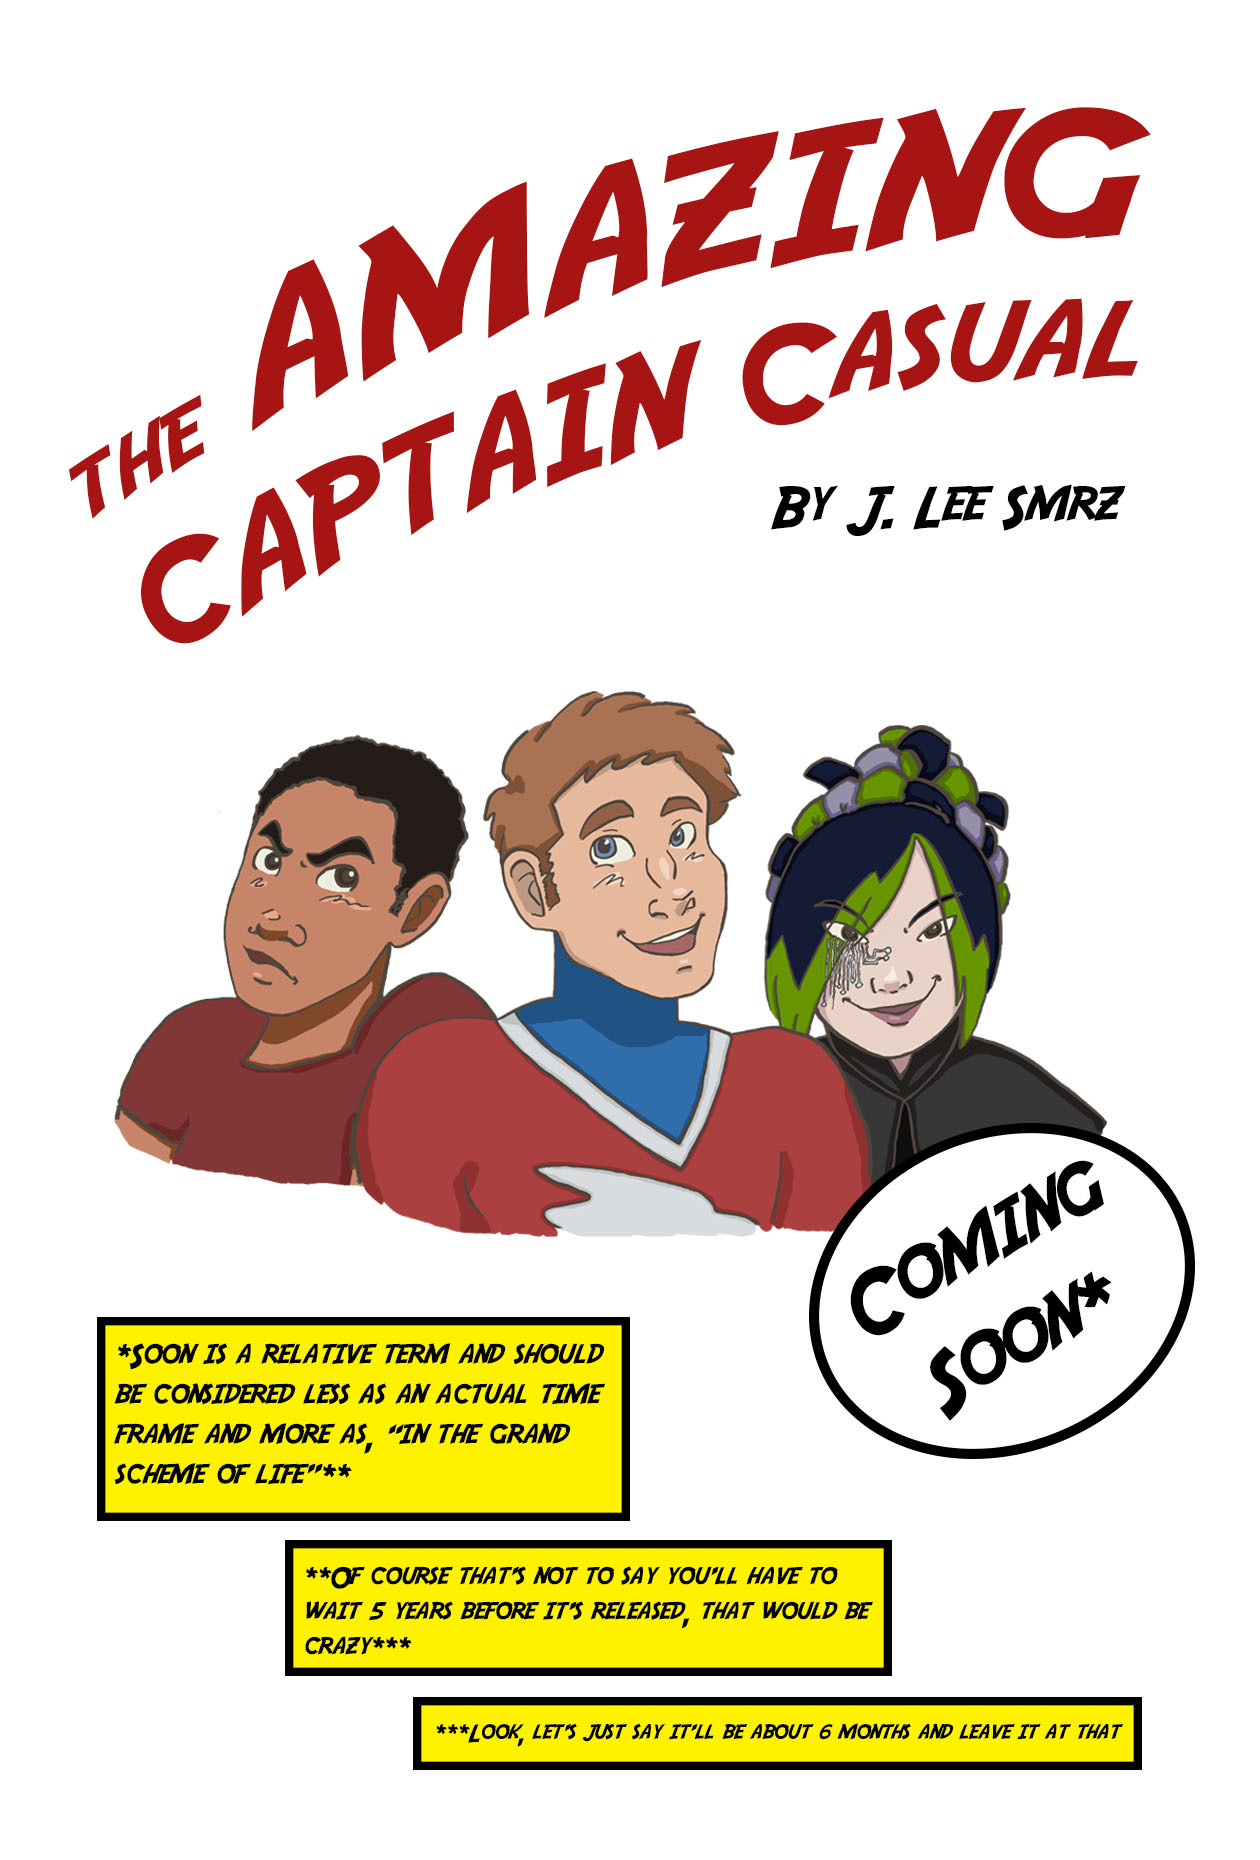 Captain Casual Trio Promo